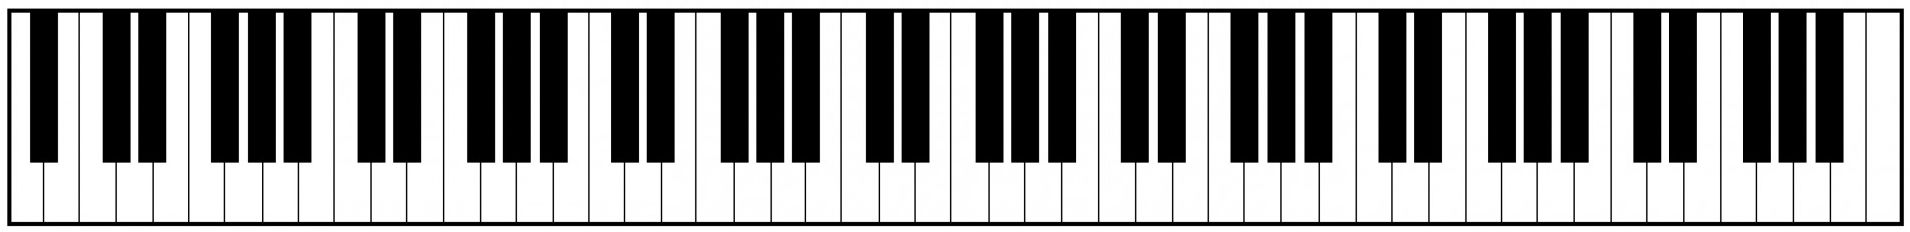 Back clipart piano. Kata stats part codewars